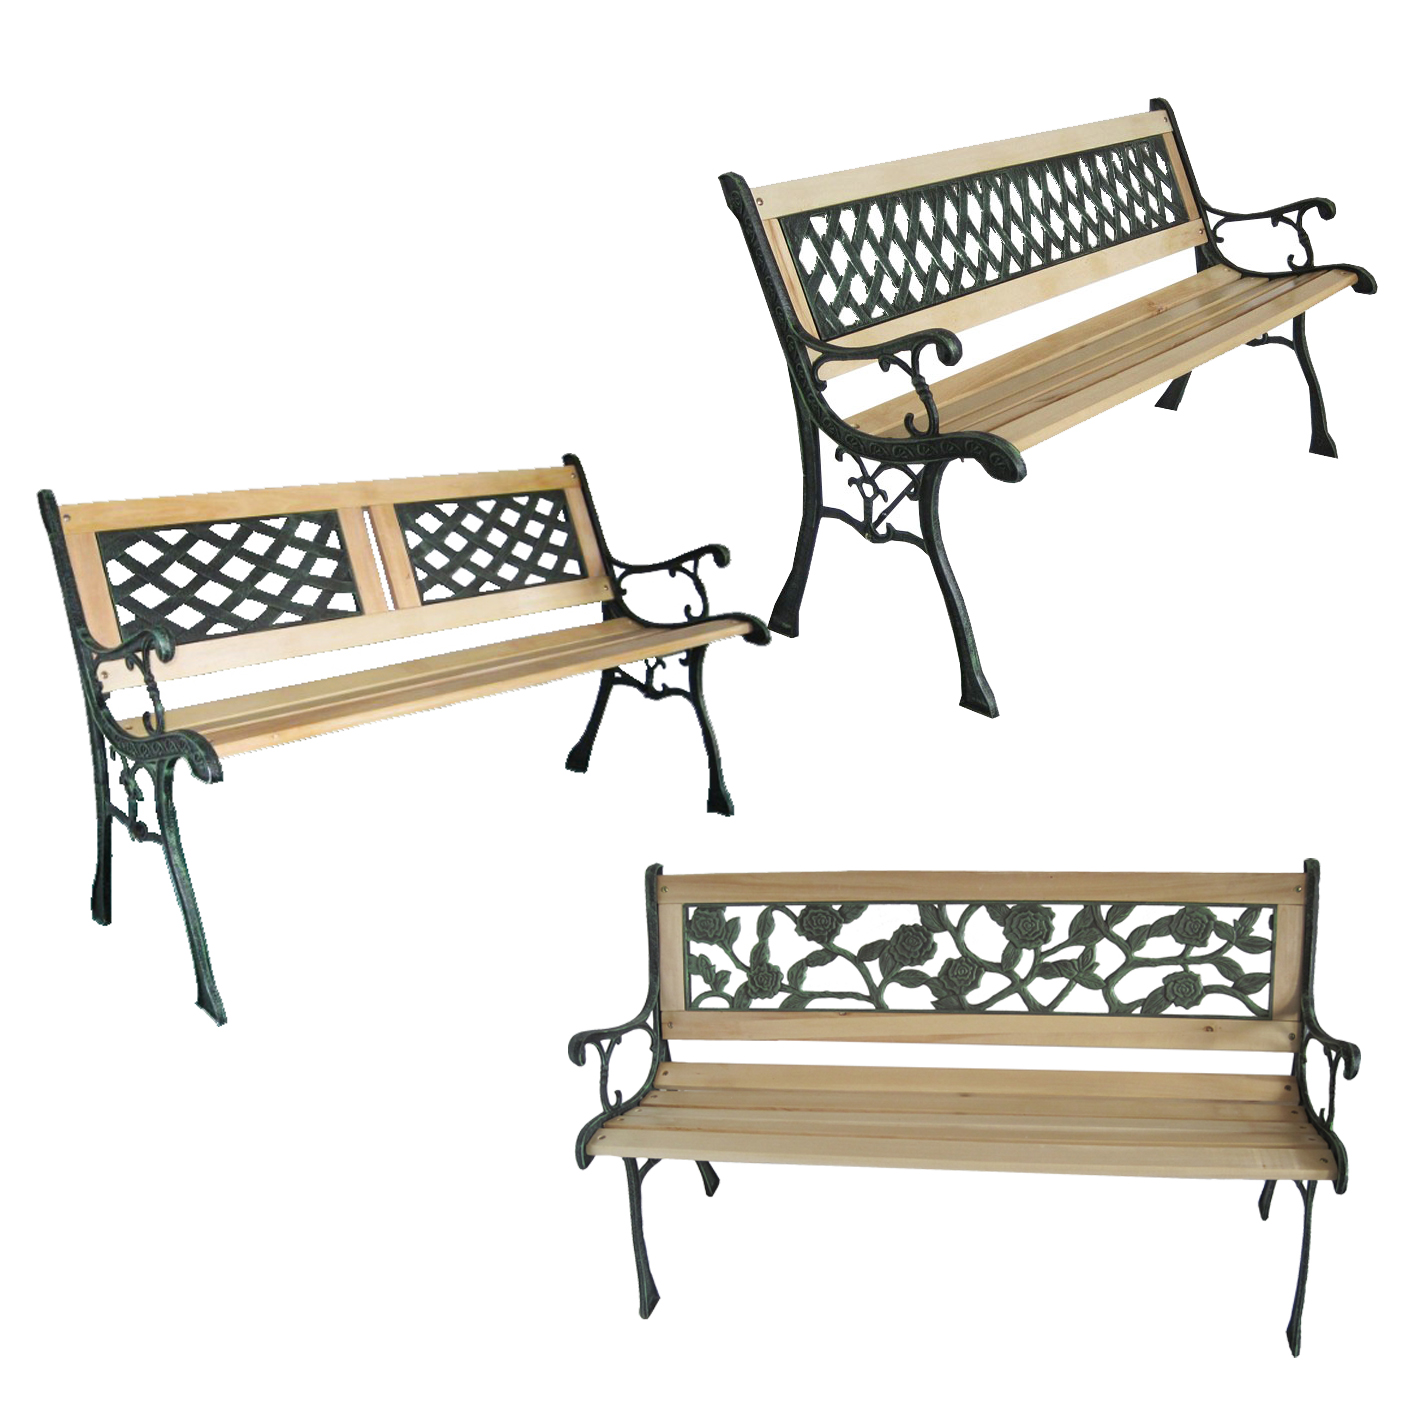 New 3 seater outdoor home wooden garden bench with cast for Outdoor furniture benches